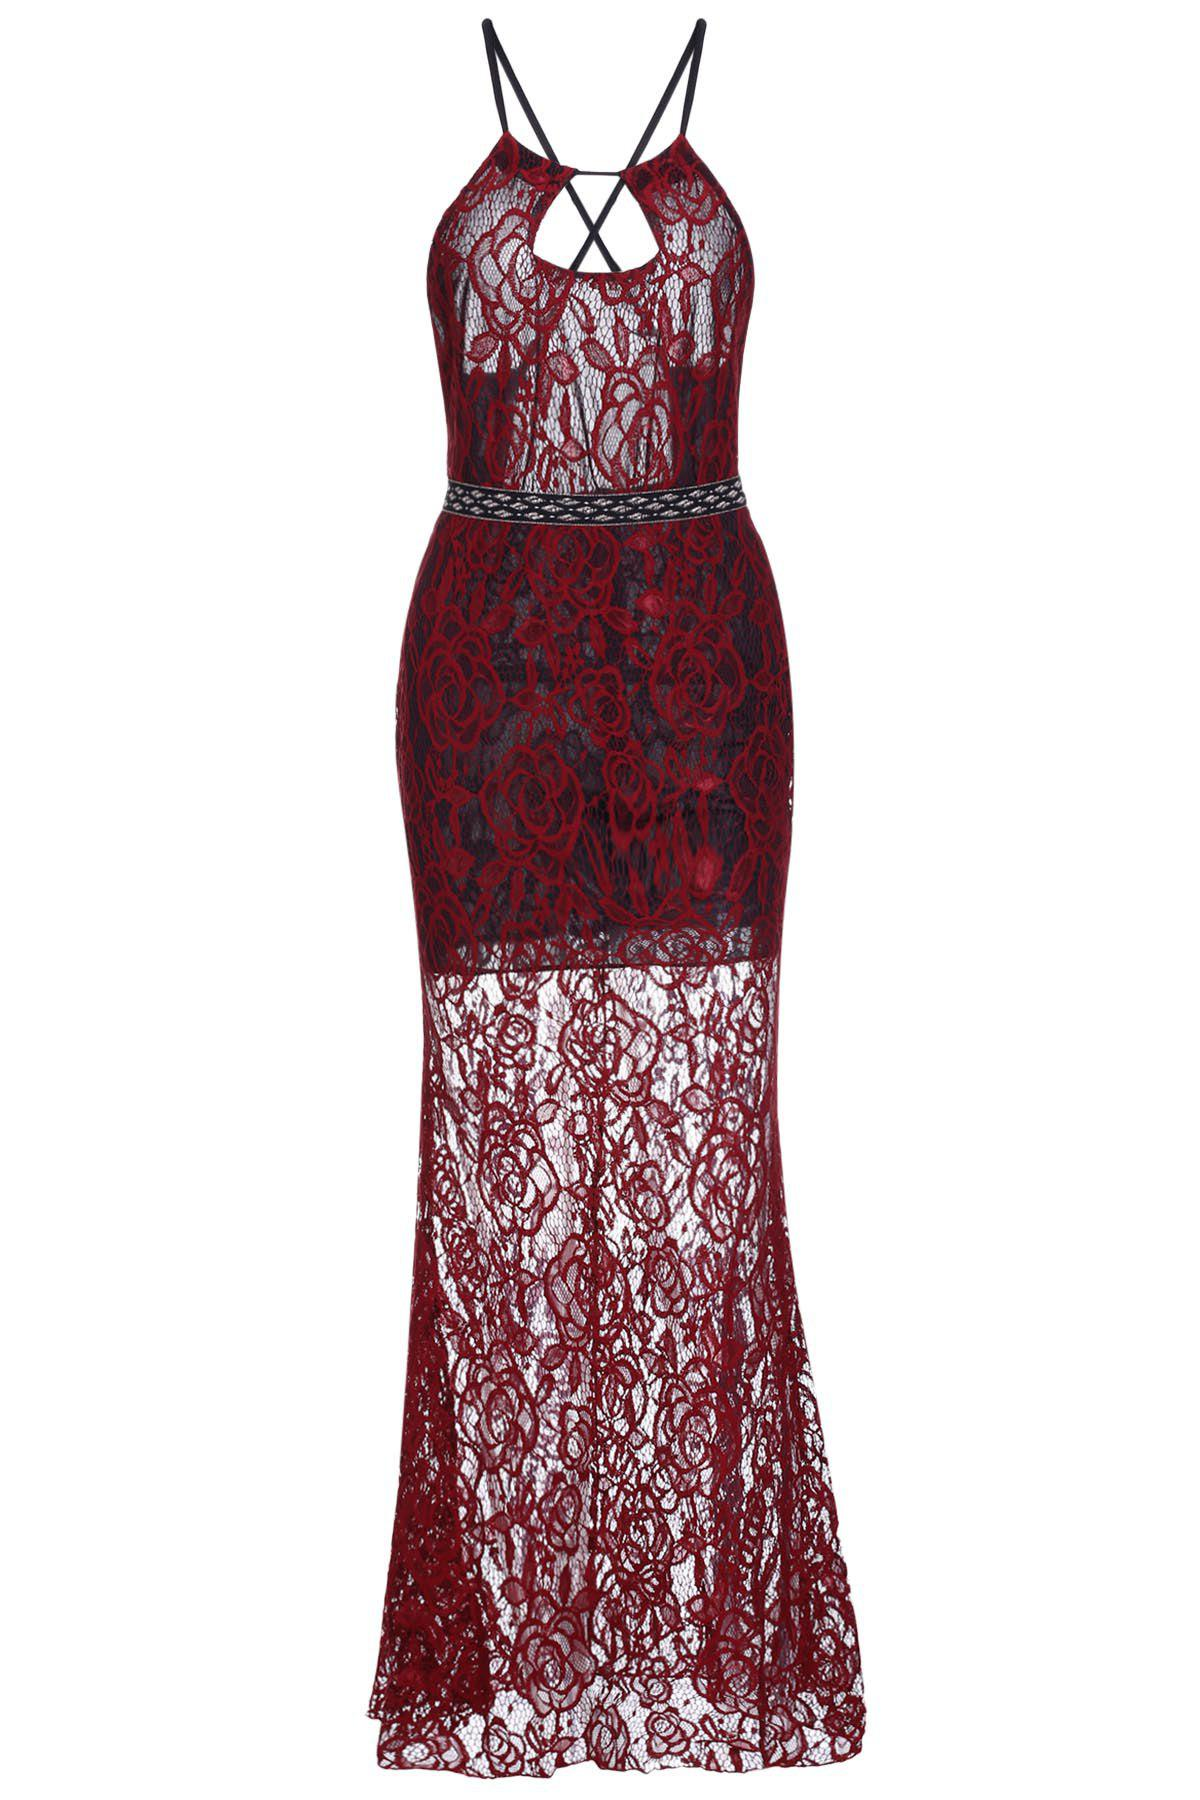 Elegant Backless Breast Hollow Out High Waist Bodycon Lace Maxi Dress For Women